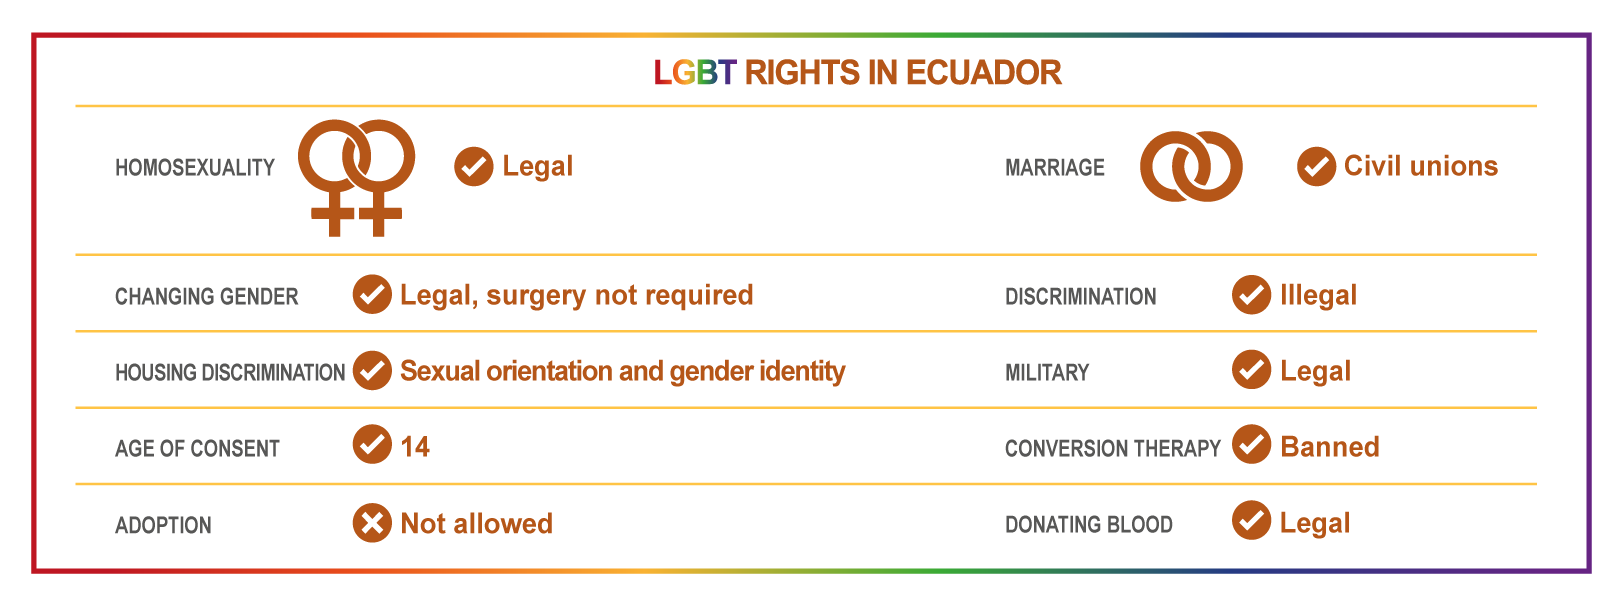 rights ecuador lgbt stadistics